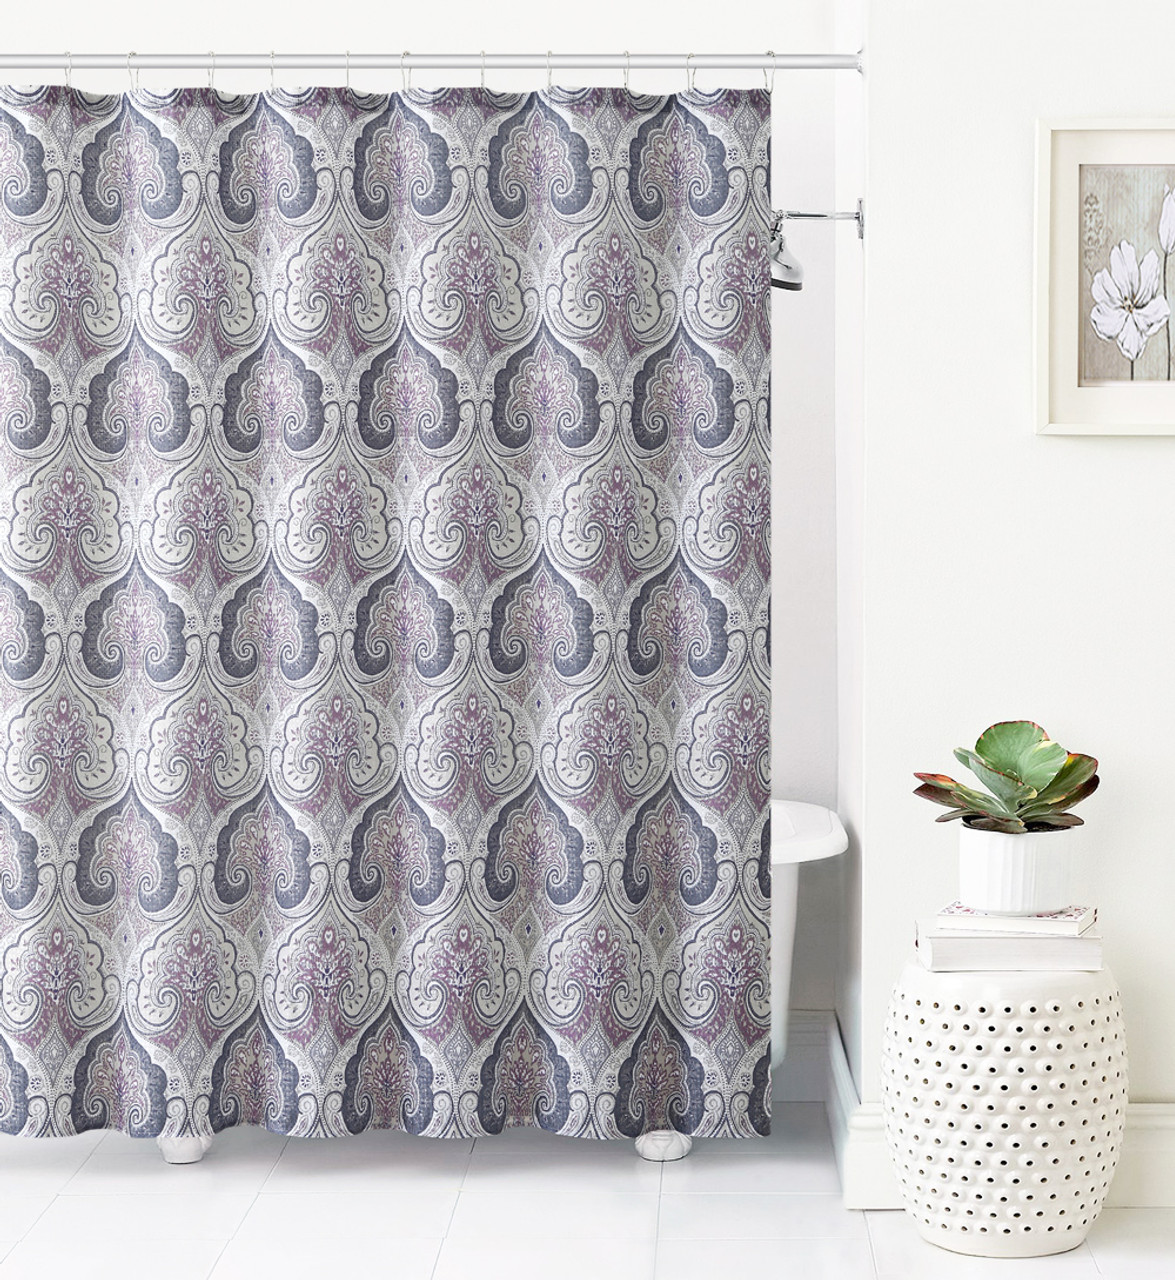 Jacquard Fabric Shower Curtain Purple Gray And Taupe Ikat Moroccan Design My Infinity Store